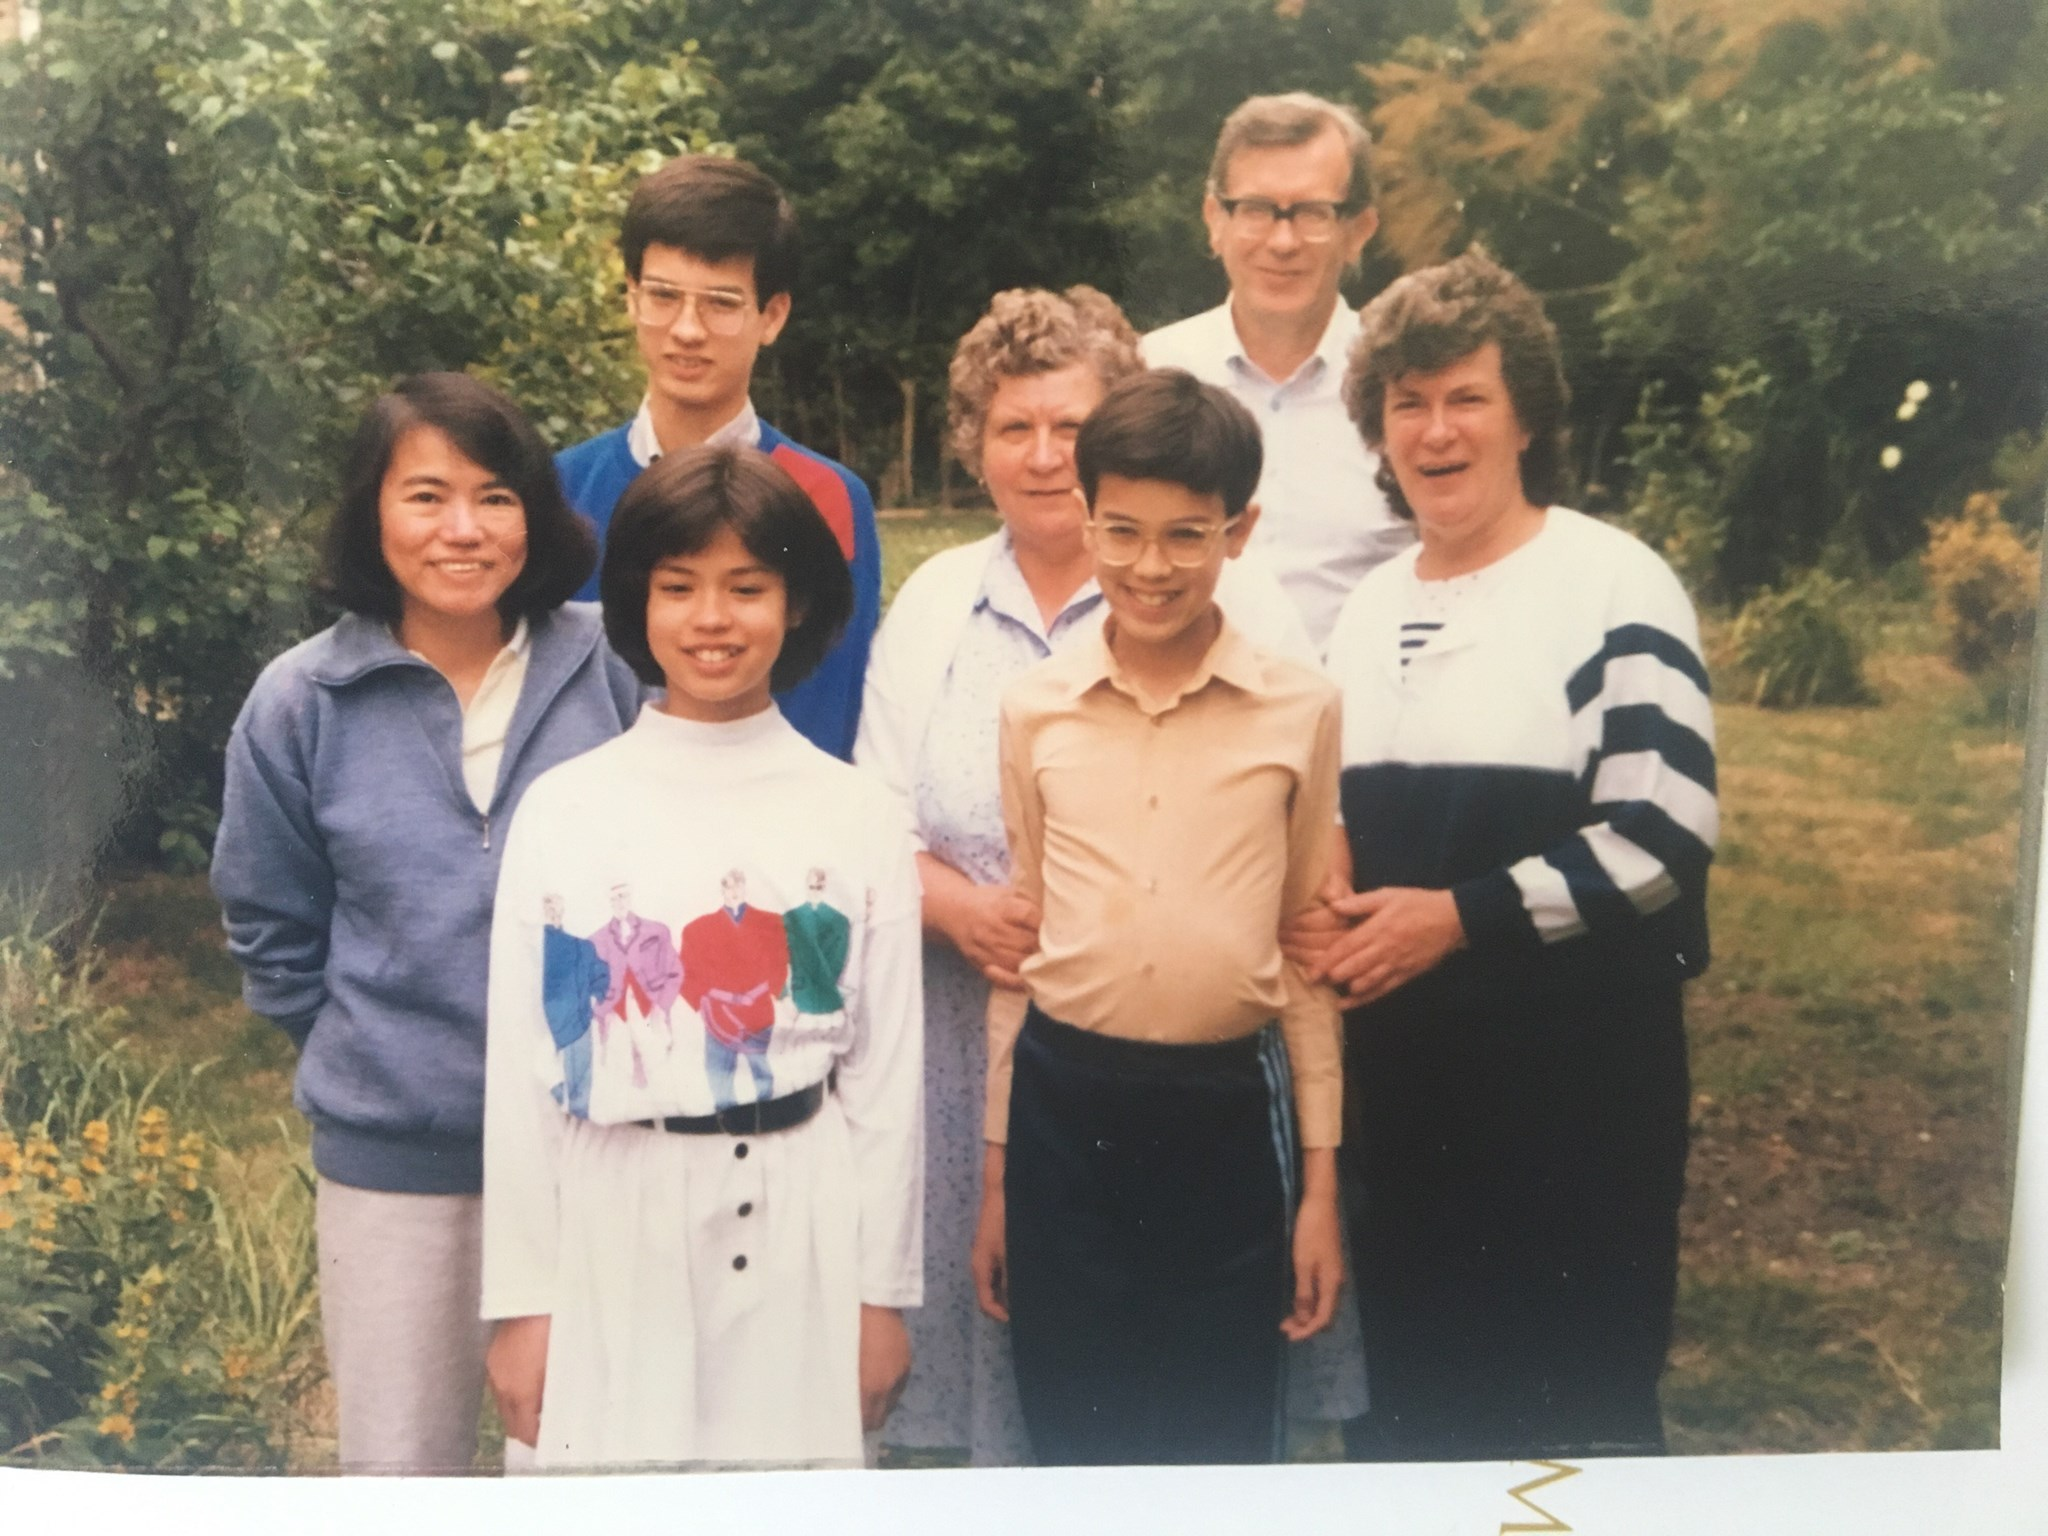 Elwyn and family in the 1980s